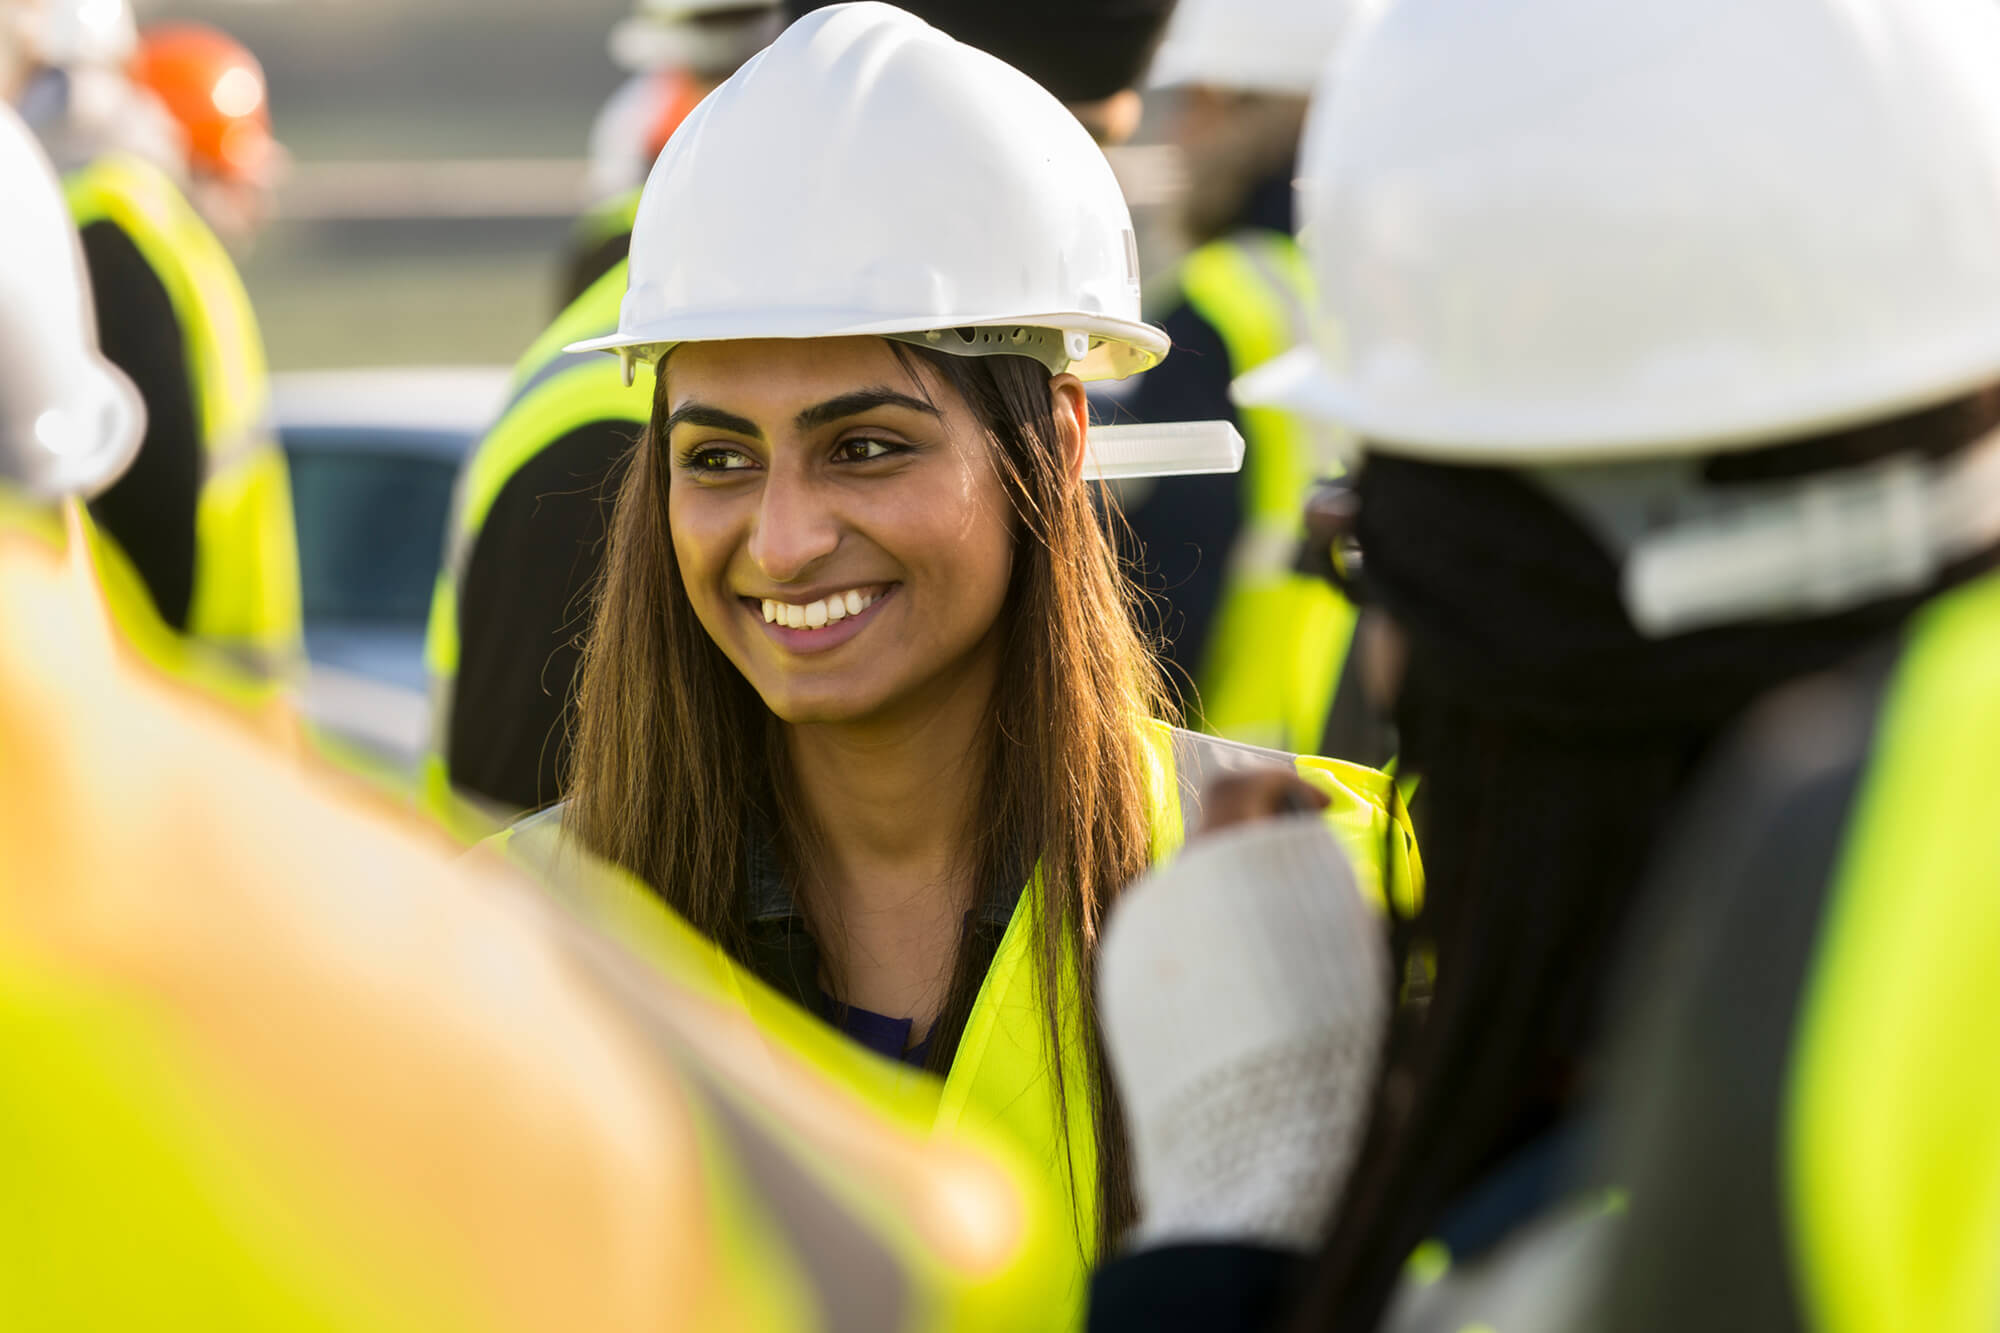 Female student on a building site with an high vis jacket and hard hat on smiling at the camera